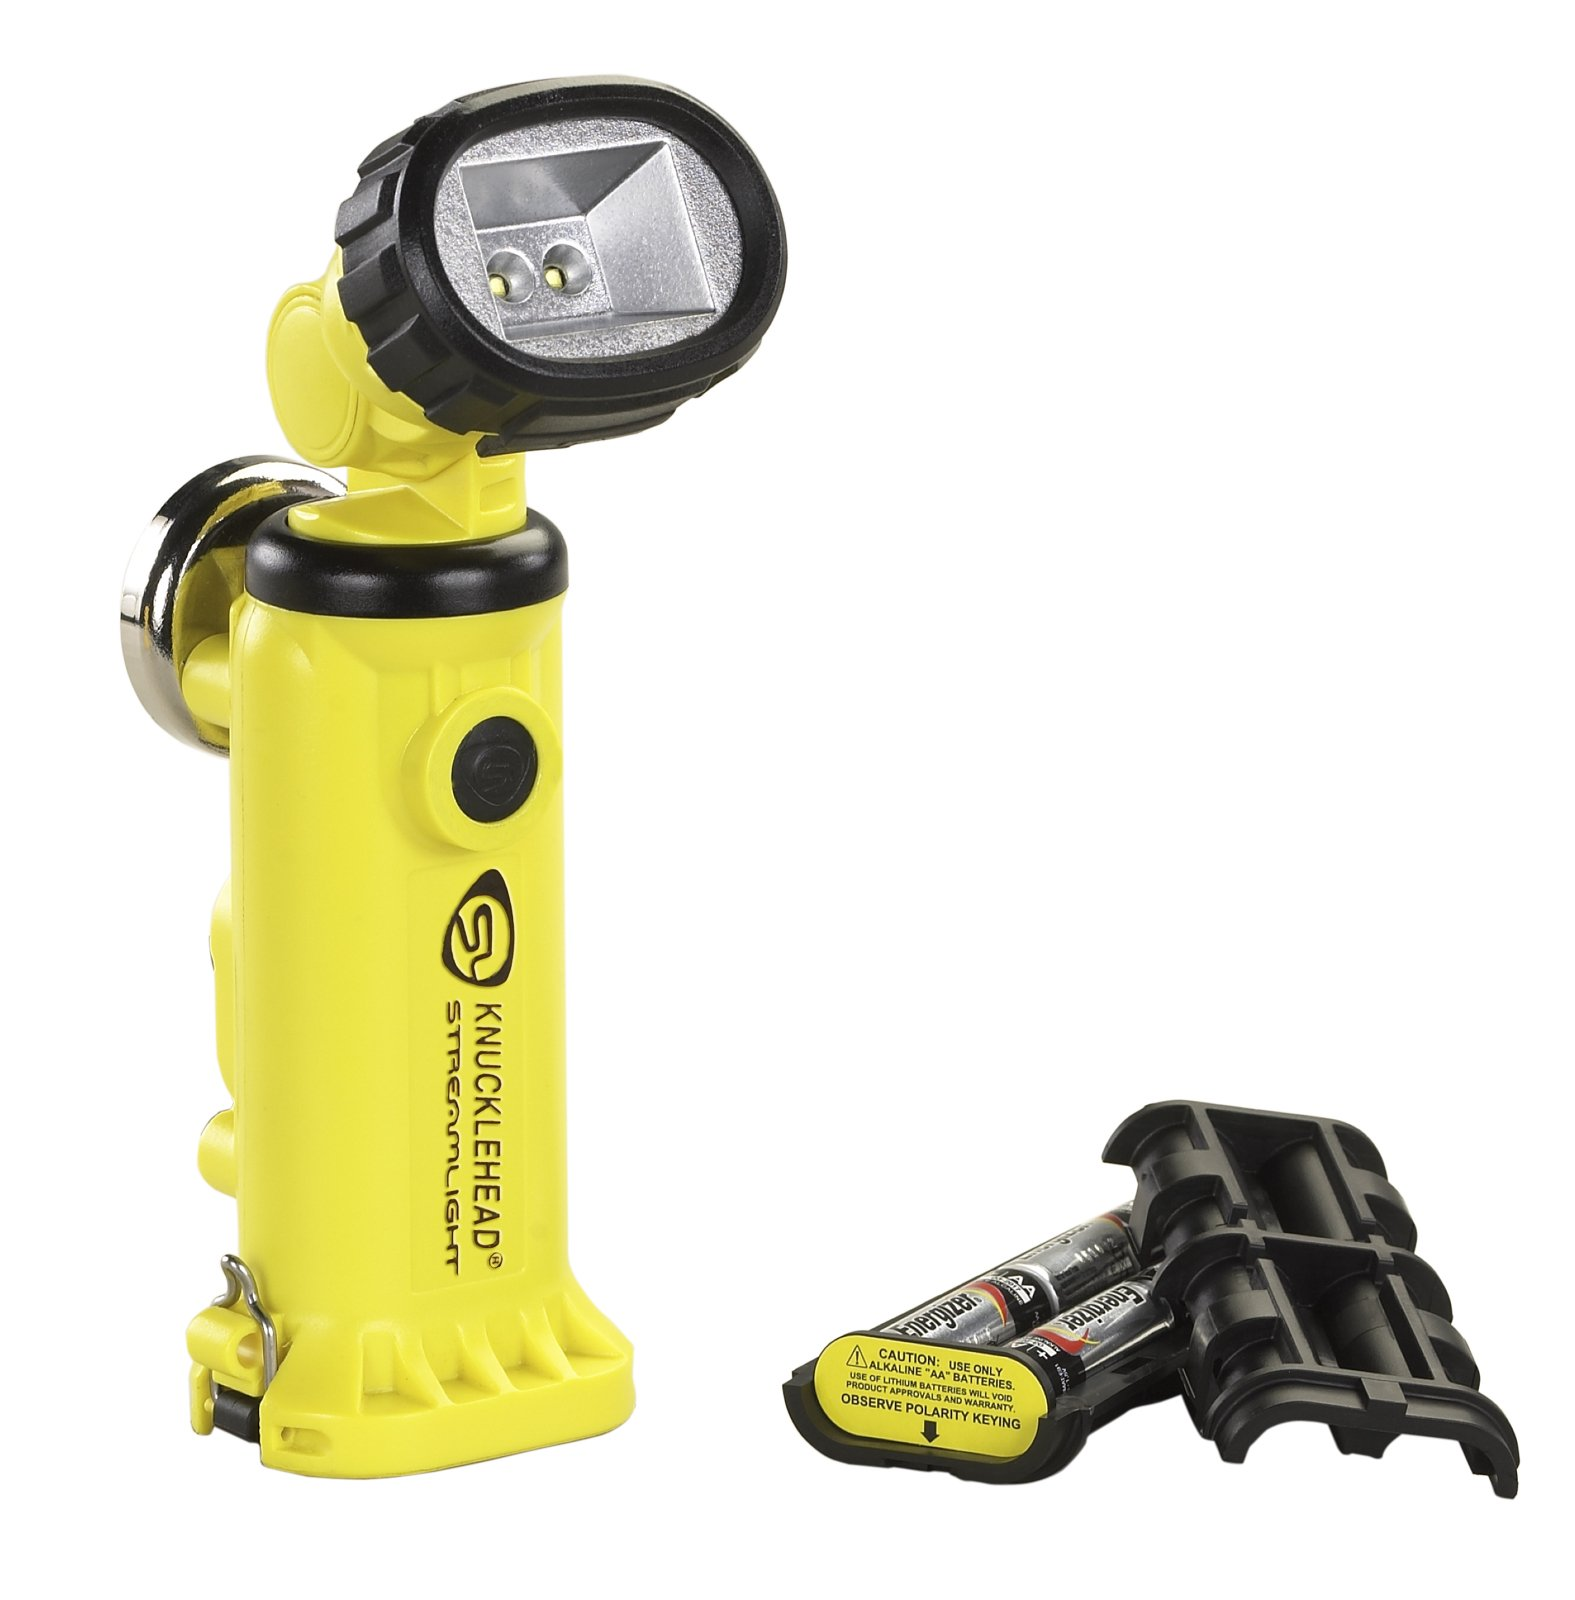 Streamlight 90642 Knucklehead Alkaline Model Work Light, Yellow - 200 Lumens